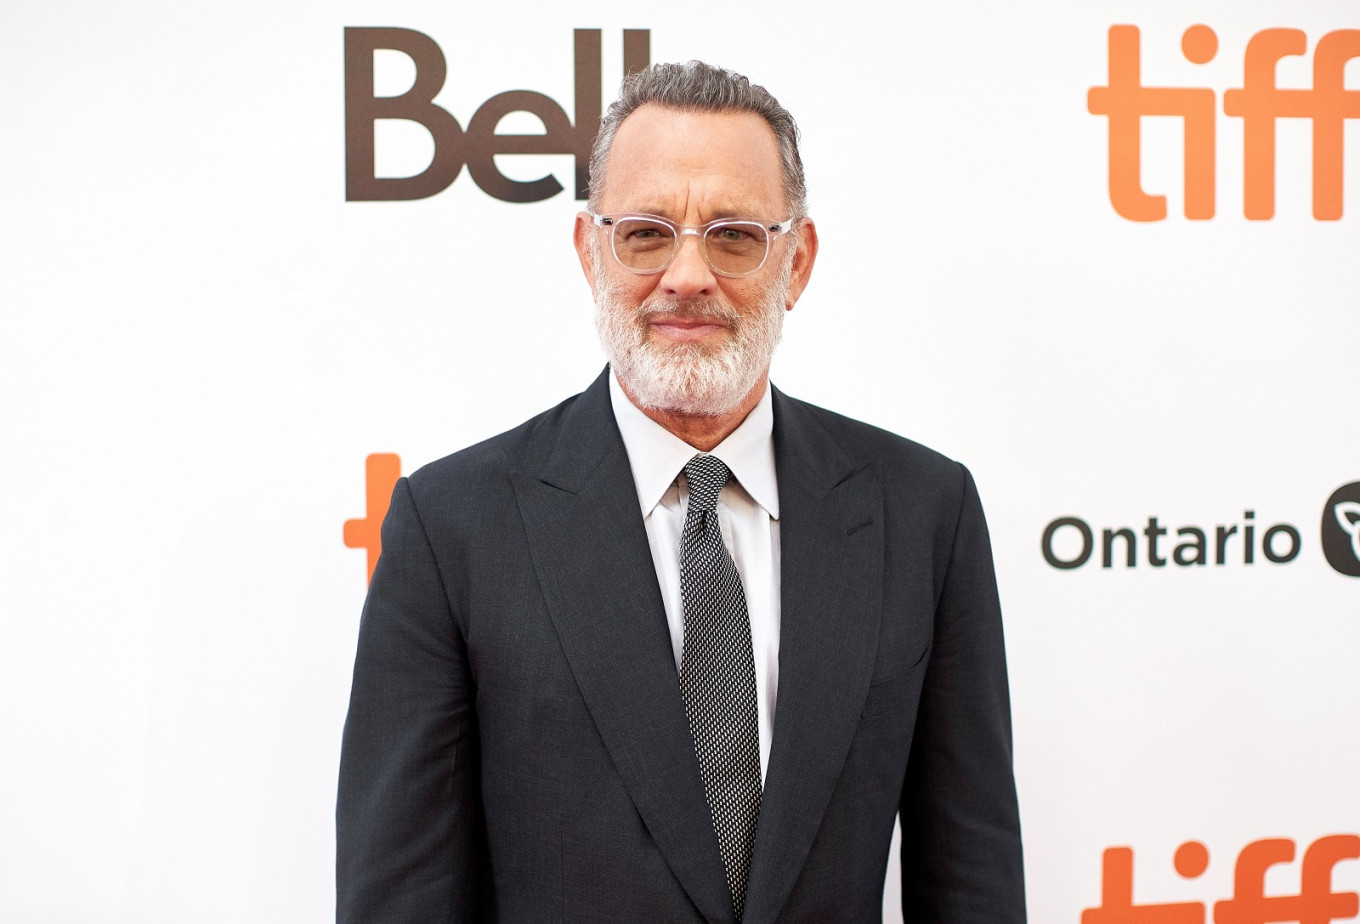 Tom Hanks and J-Lo strippers raise pulses at Toronto fest